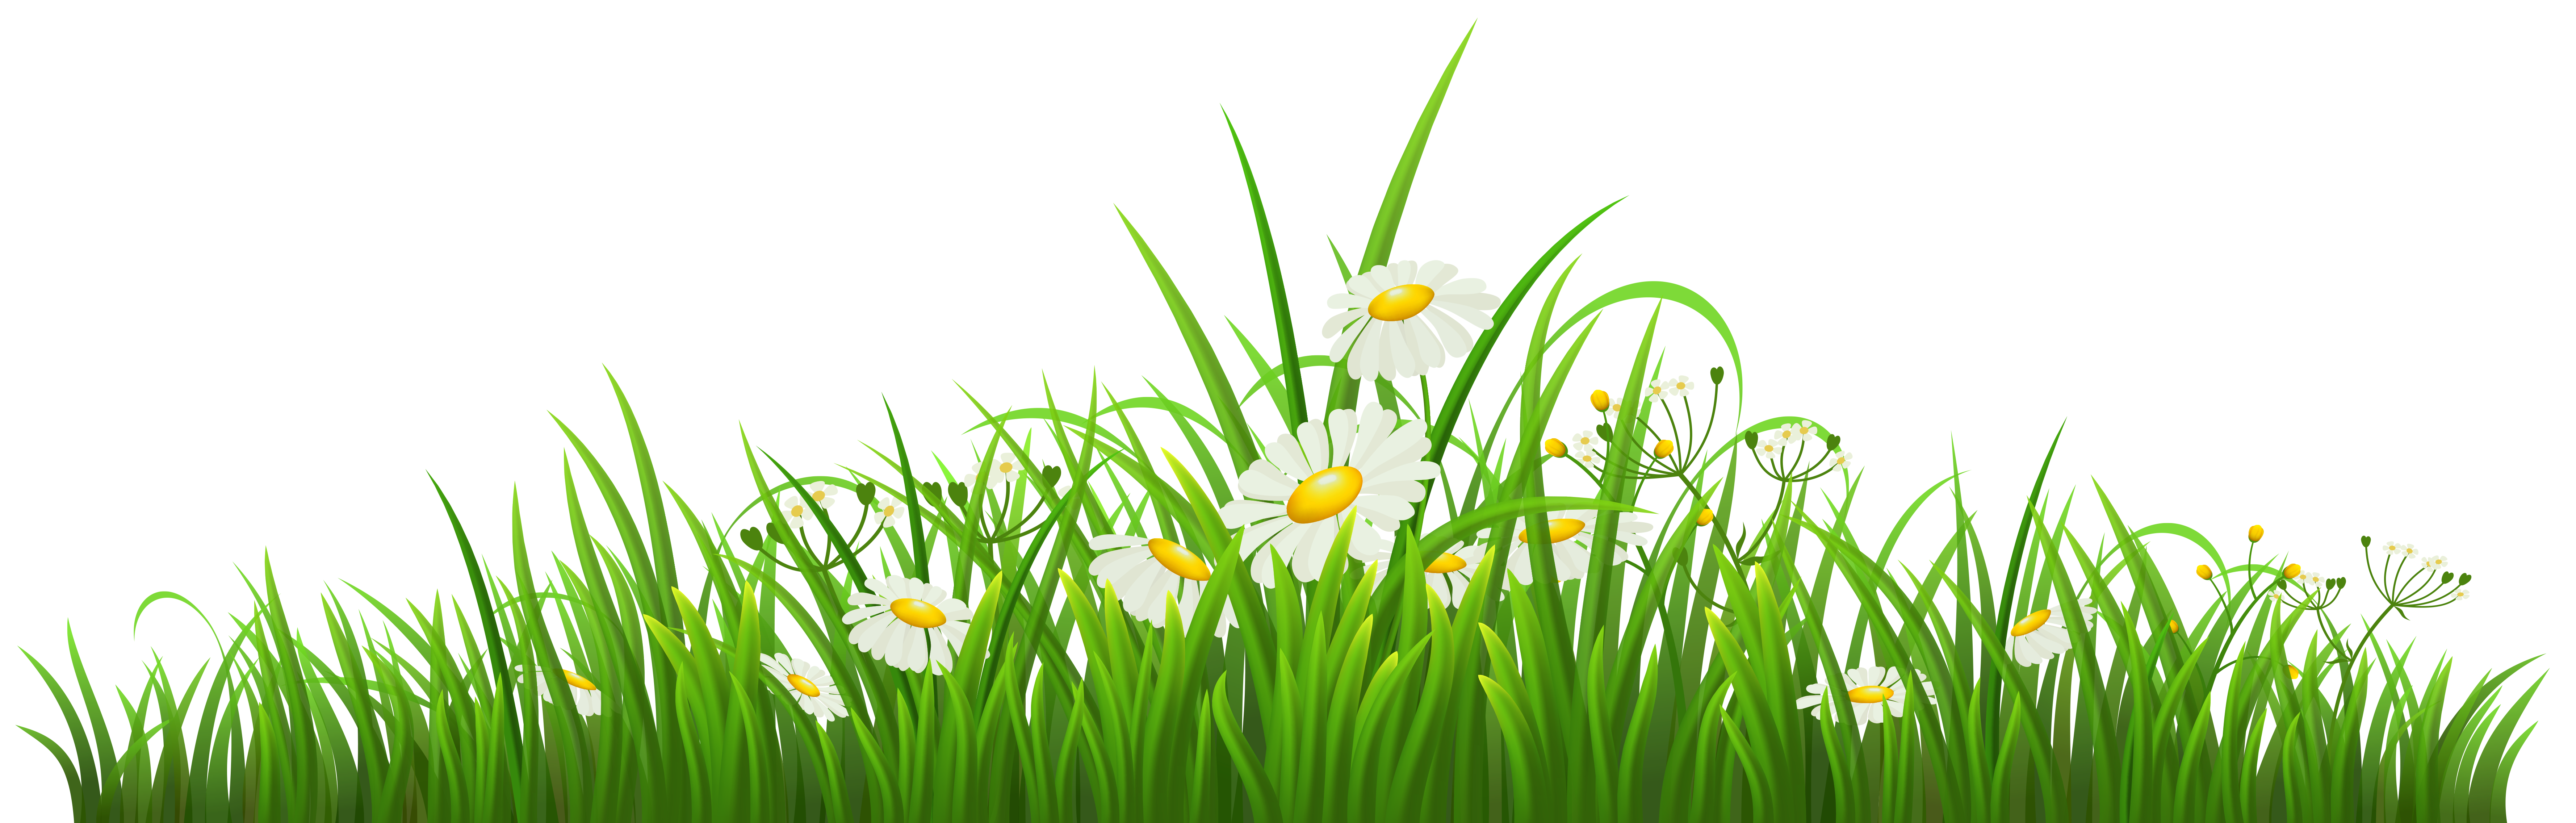 Flower meadow clipart clip art black and white download Transparent Grass with Chamomile PNG Clipart | Gallery Yopriceville ... clip art black and white download